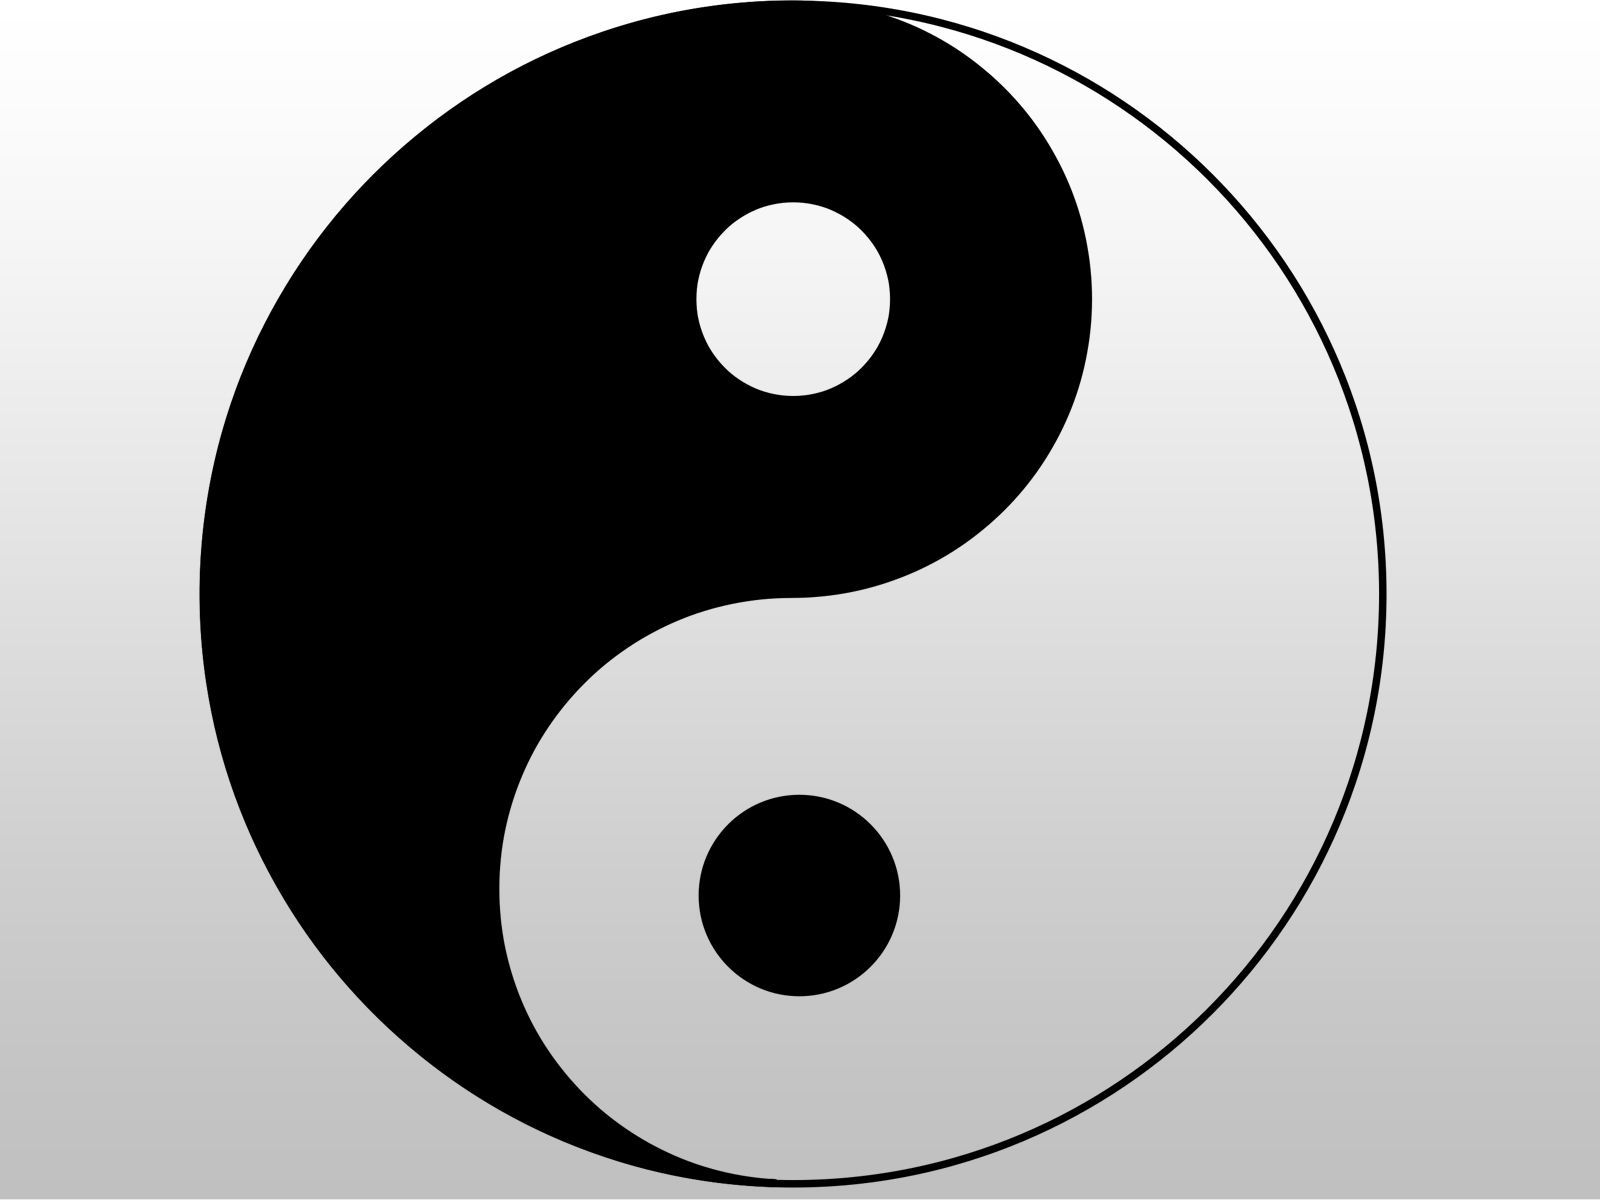 yin yang hd desktop wallpaper : fullscreen 1920×1080 yin and yang